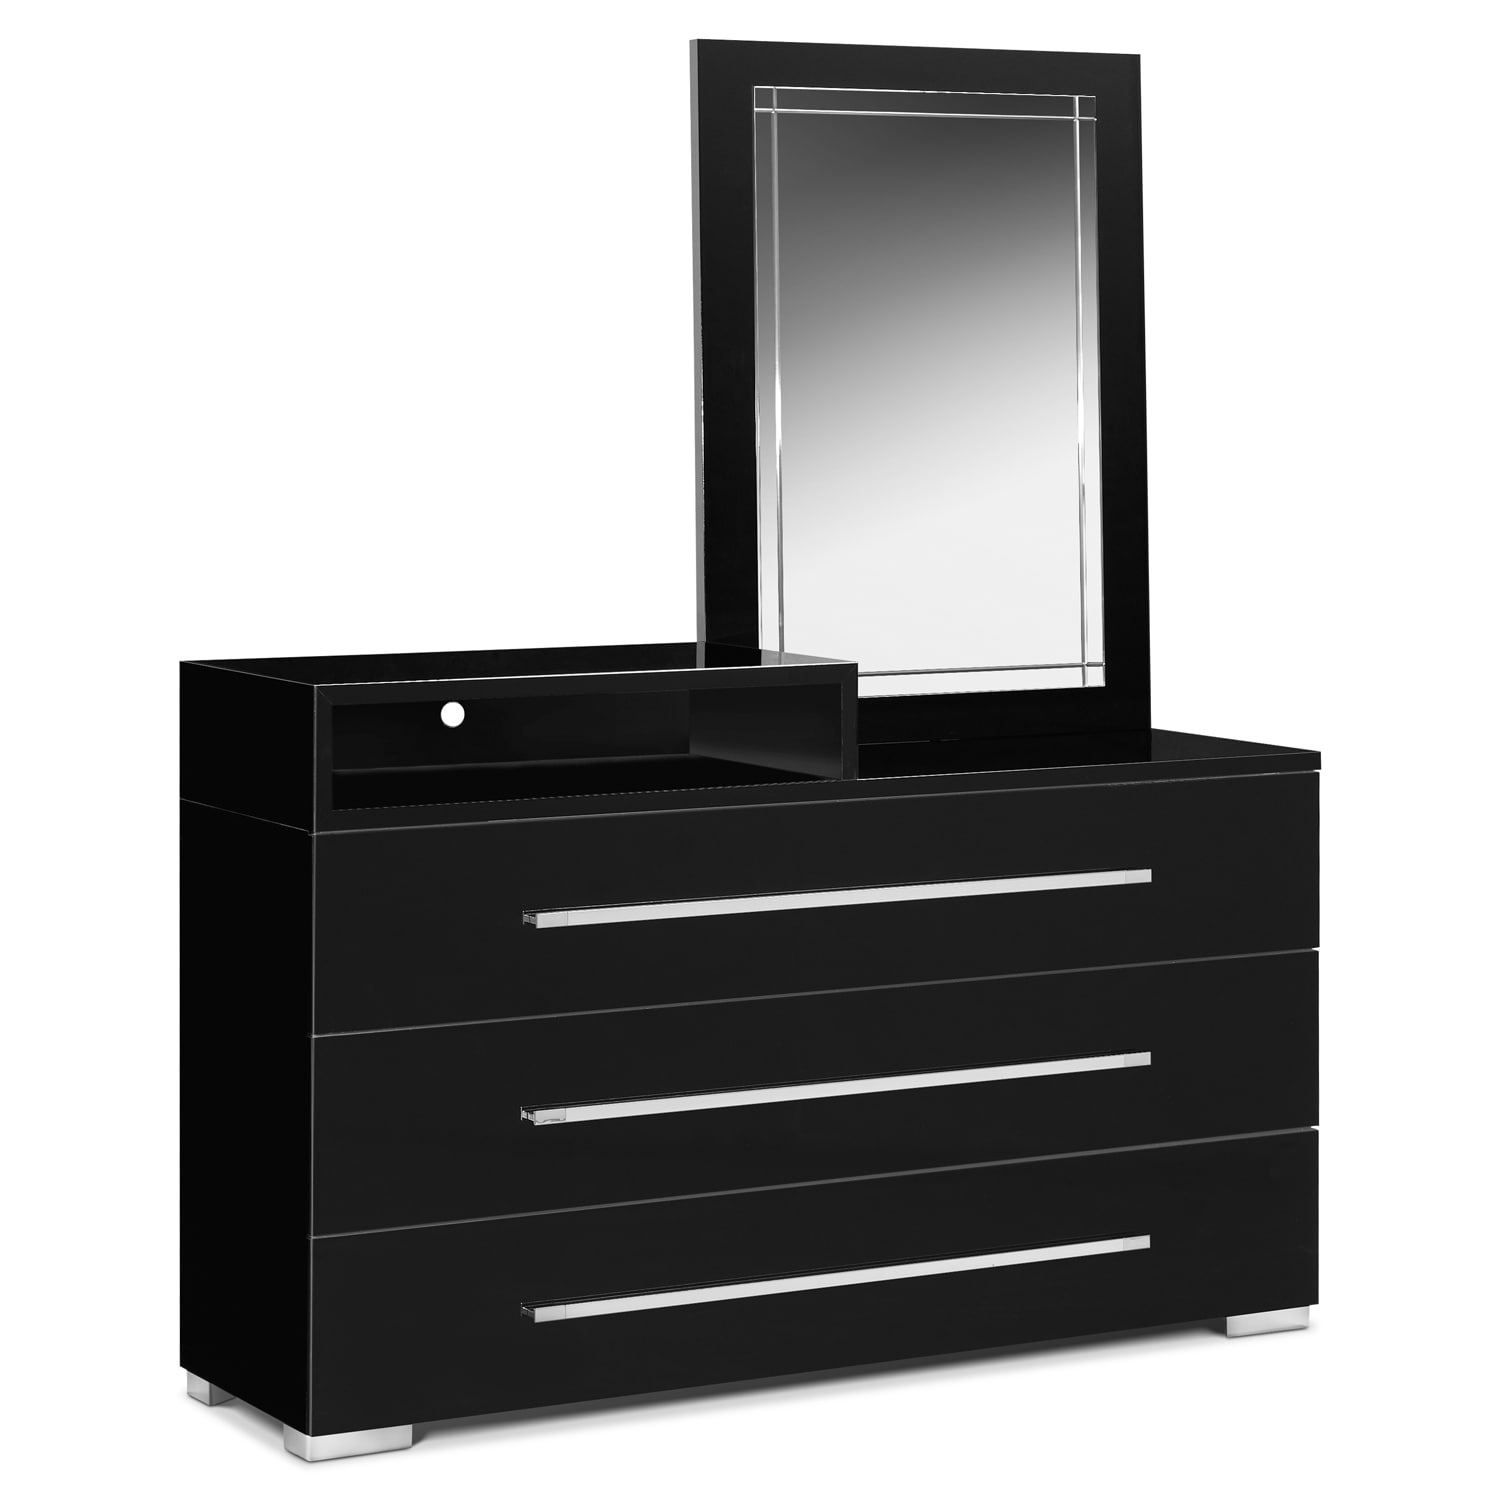 mirrors signature dressers furnishings ashley bedroom furniture collections dresser boulevard by mirror item bpl design home zanbury